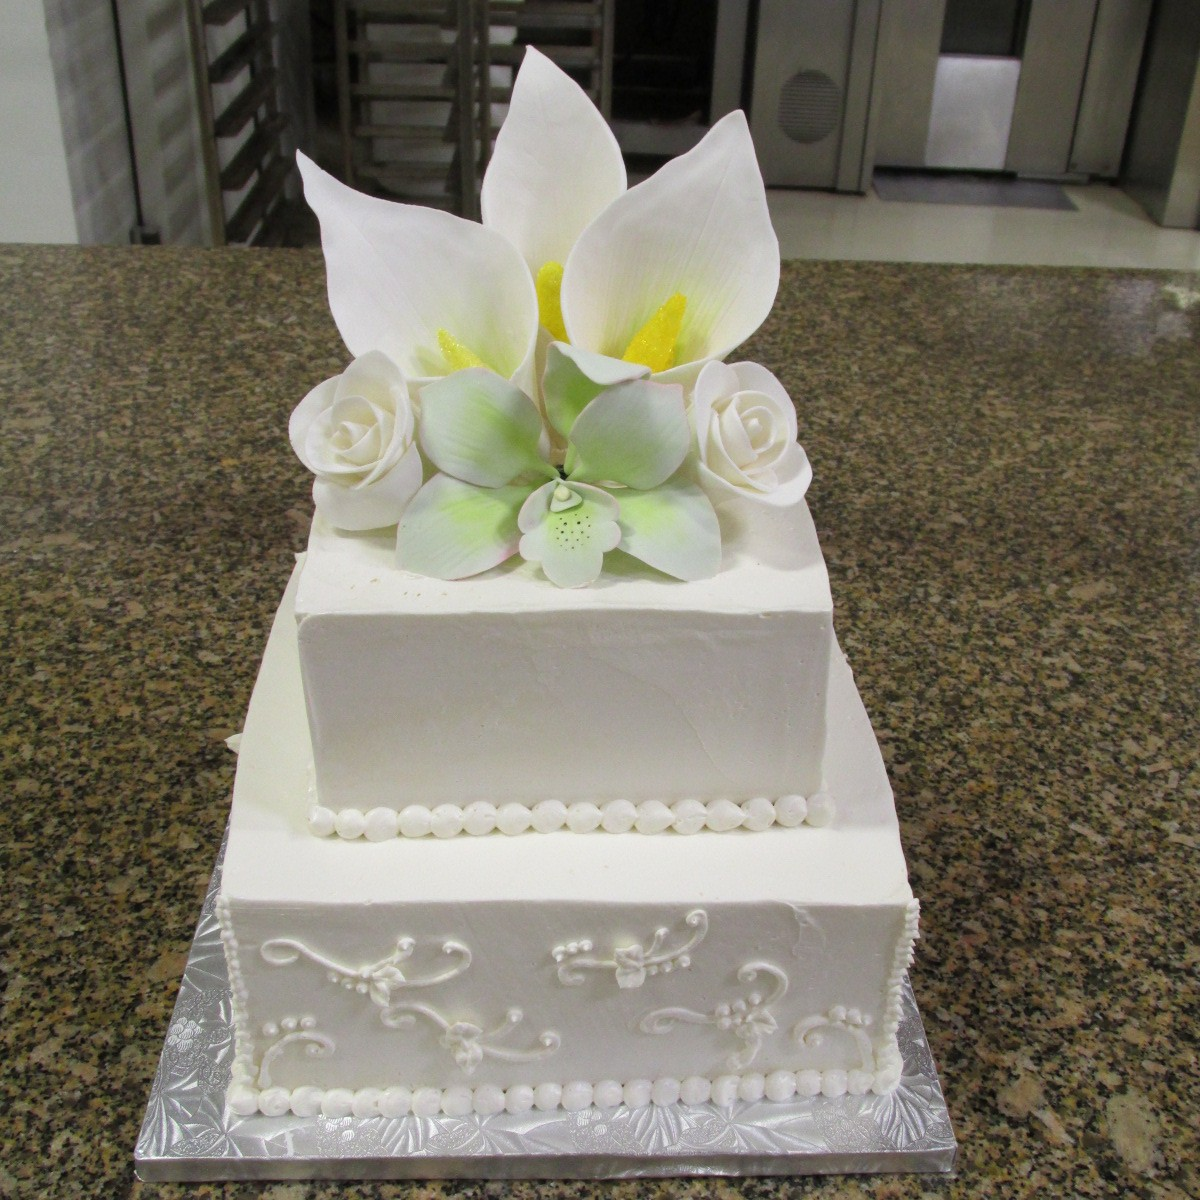 Wedding Cake with Handmade Gumpaste Flowers